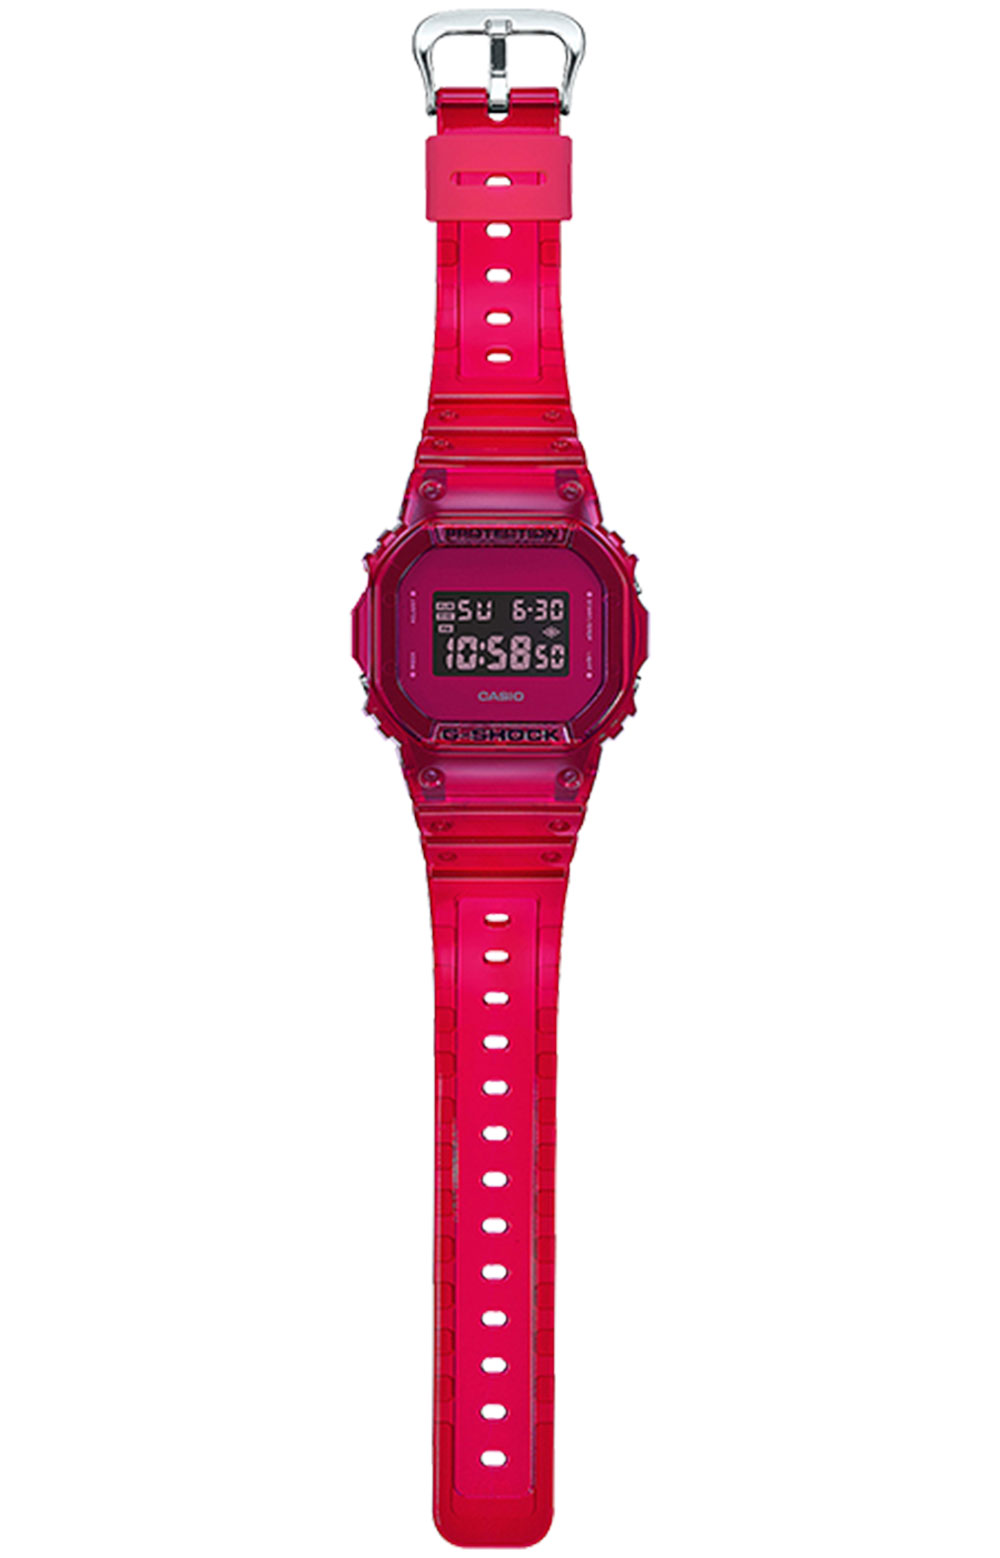 DW5600SB-4 Watch - Red  2